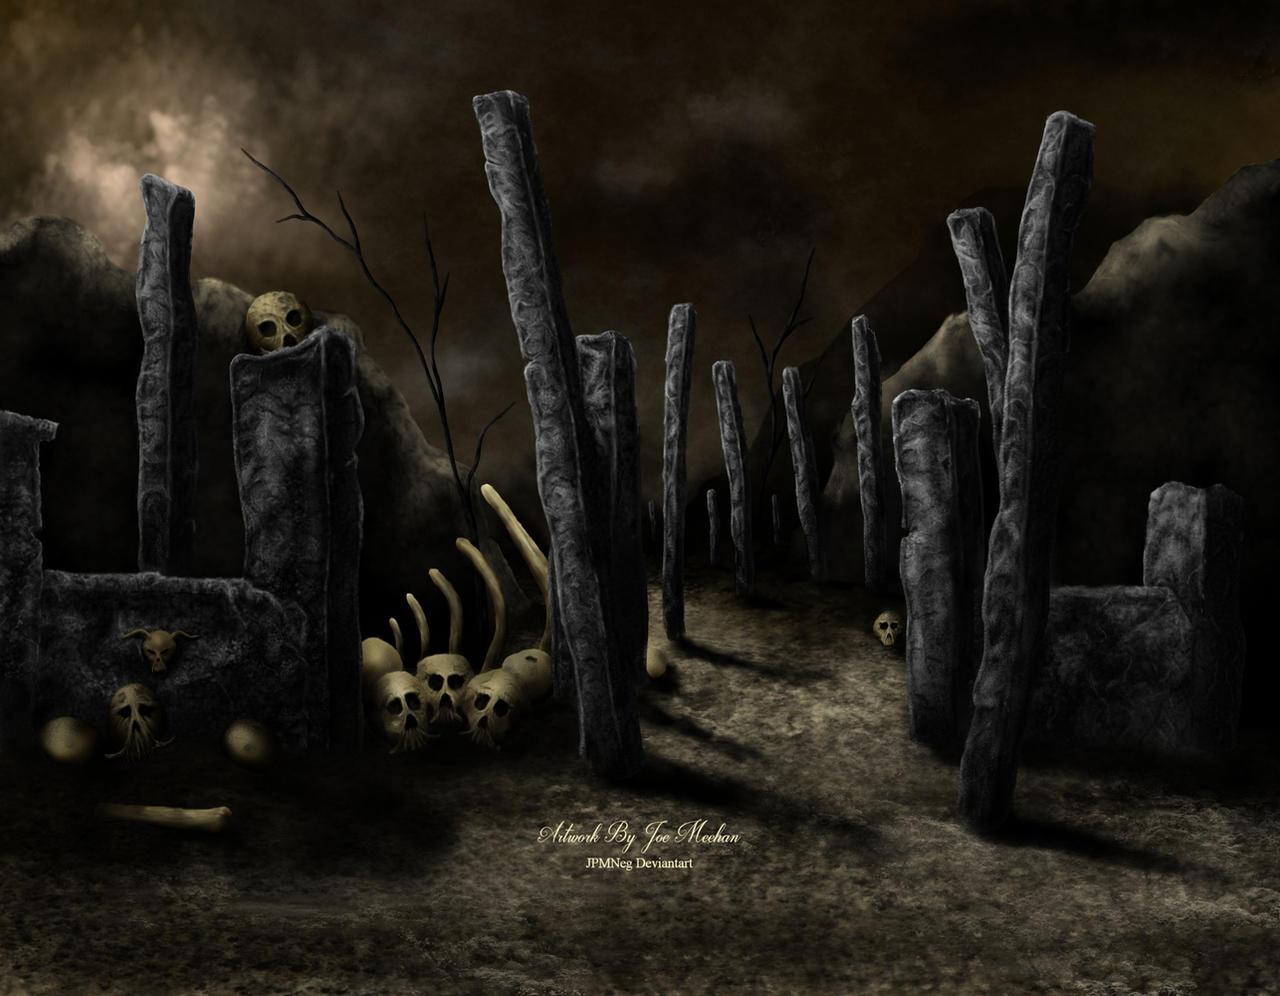 Entrance To Hades : Entrance to the underworld by jpmneg on deviantart